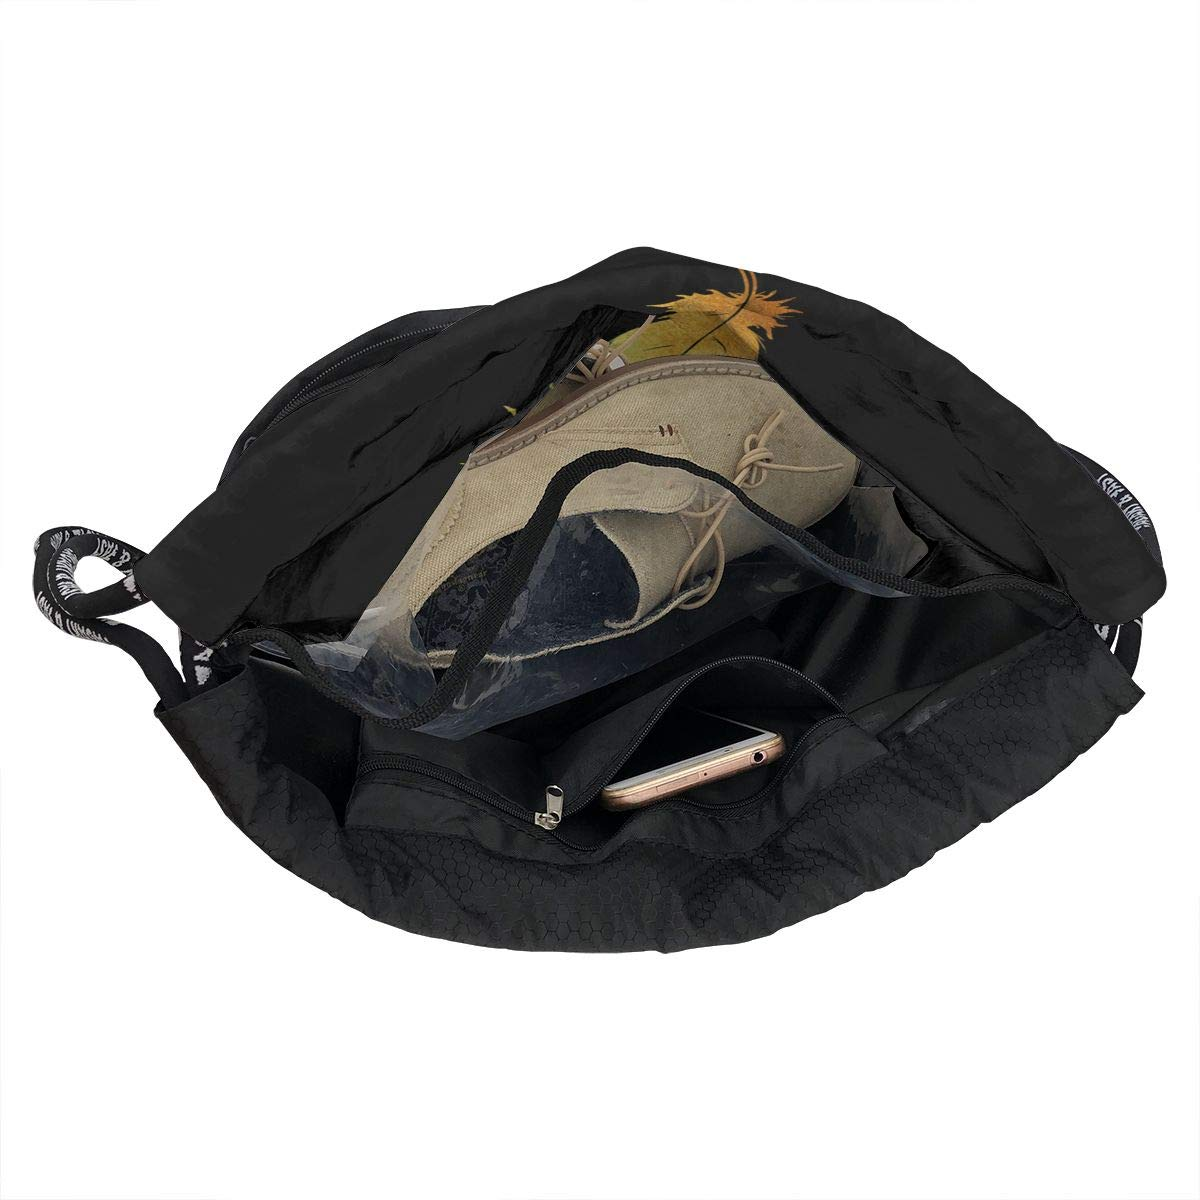 Large Storage Waterproof Cinch Backpack Sackpack Tote Sack for Gym Travel Zol1Q Gold Feather Drawstring Bag for Men /& Women